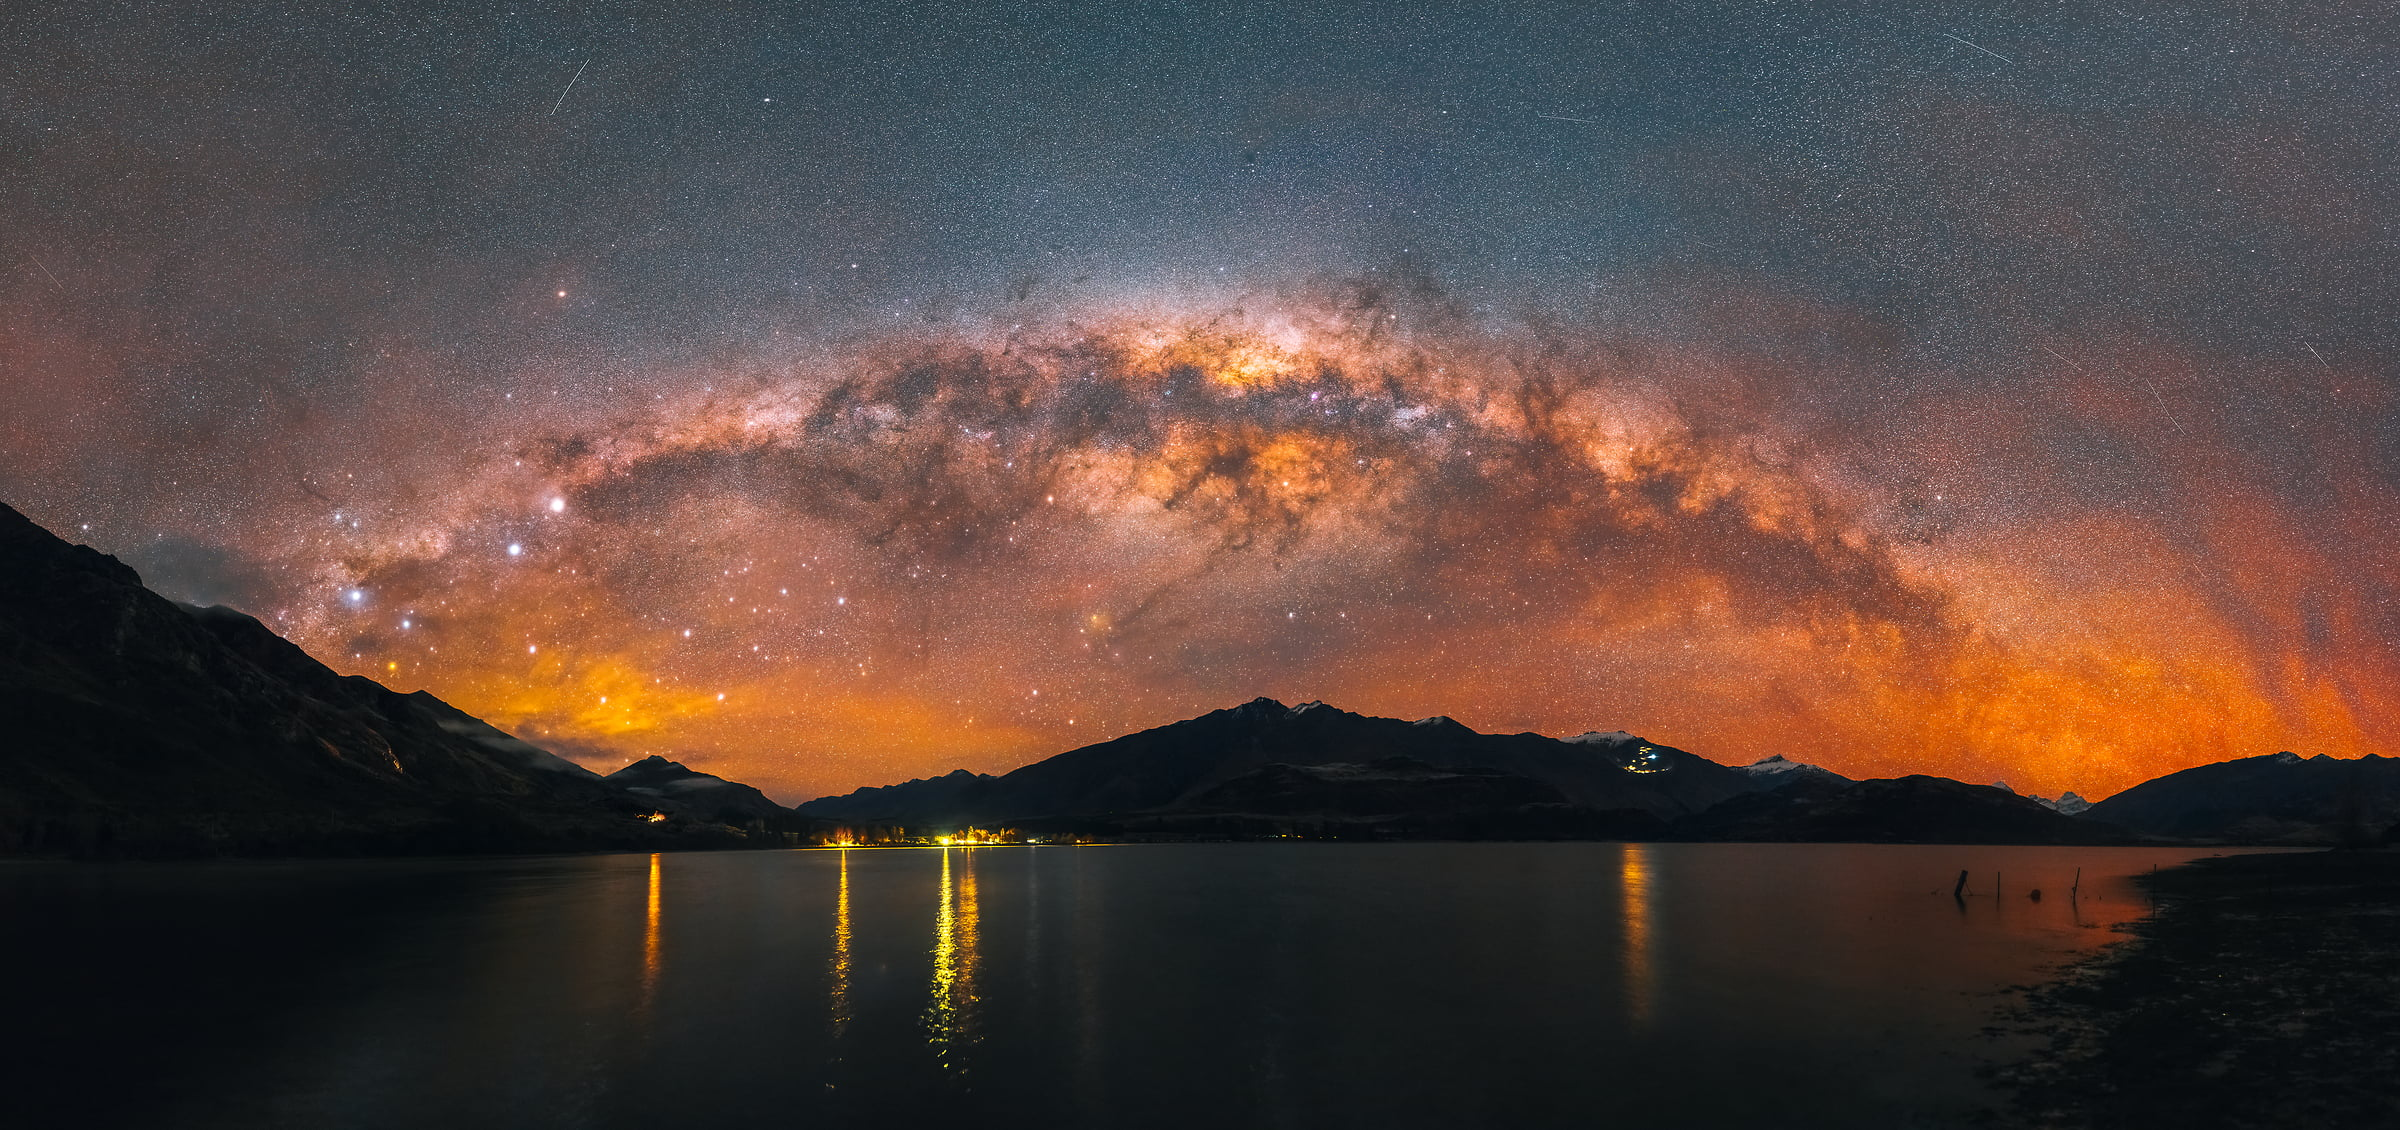 297 megapixels! A very high resolution, large-format VAST photo print of the night sky, milky way, and stars over mountains and a lake; fine art astrophotography landscape photo created by Paul Wilson in Lake Wanaka, New Zealand